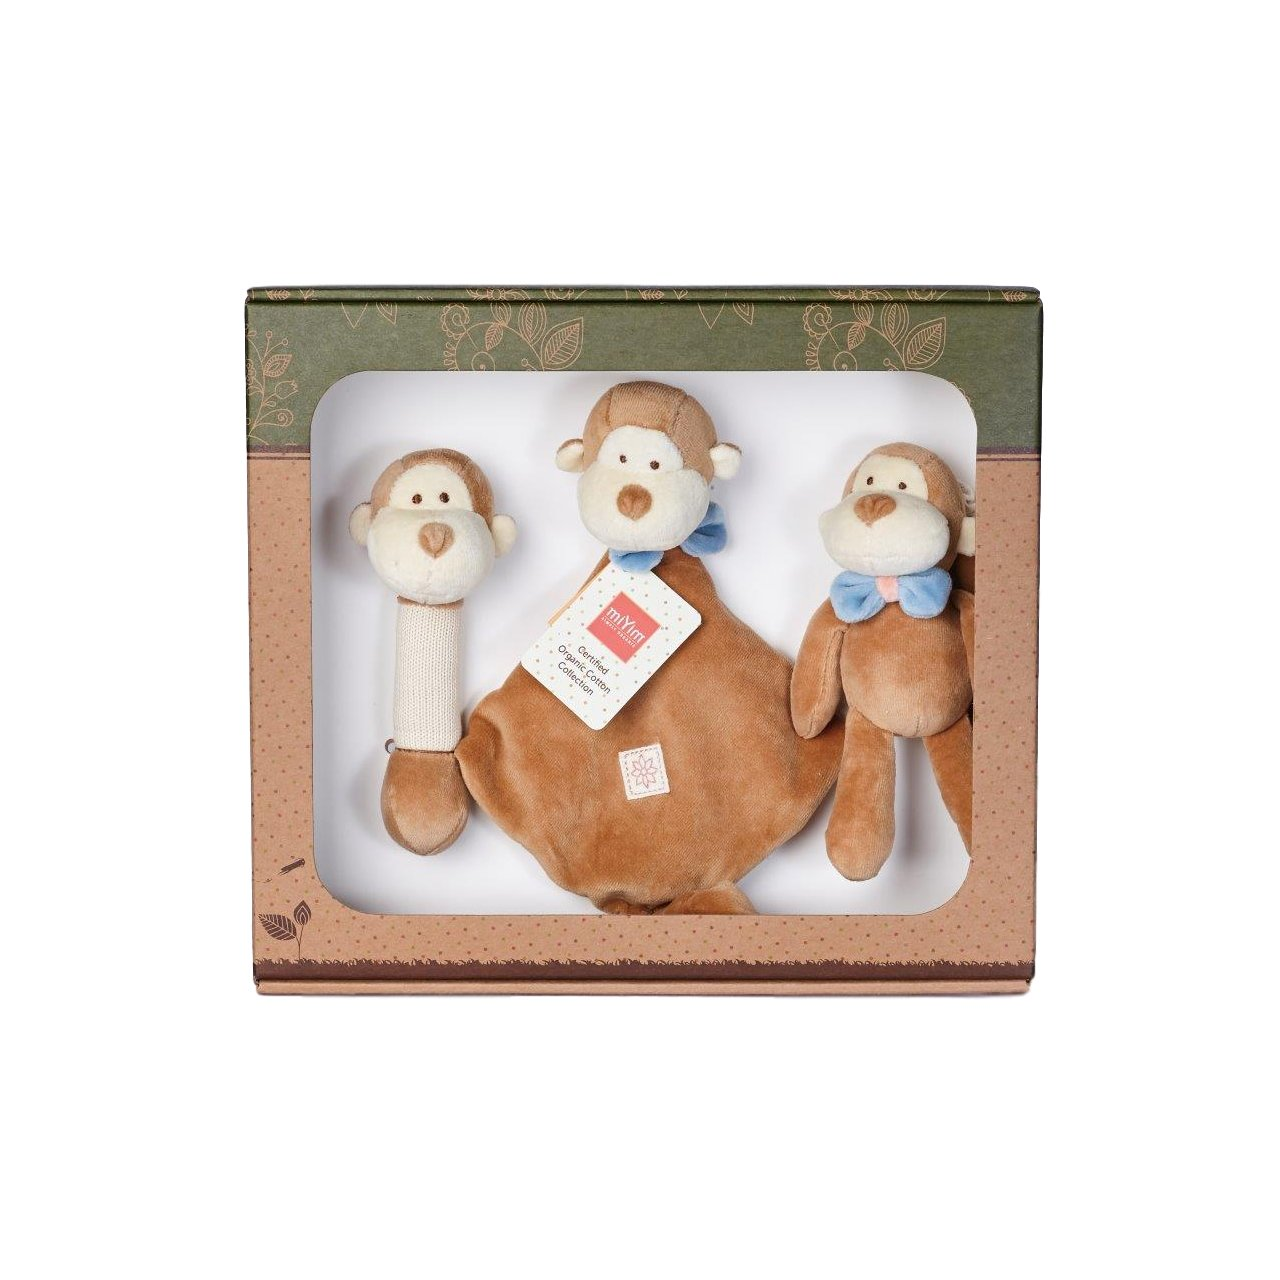 Miyim Organic Soft Toy Gift Set Miyim Toys Monkey at Little Earth Nest Eco Shop